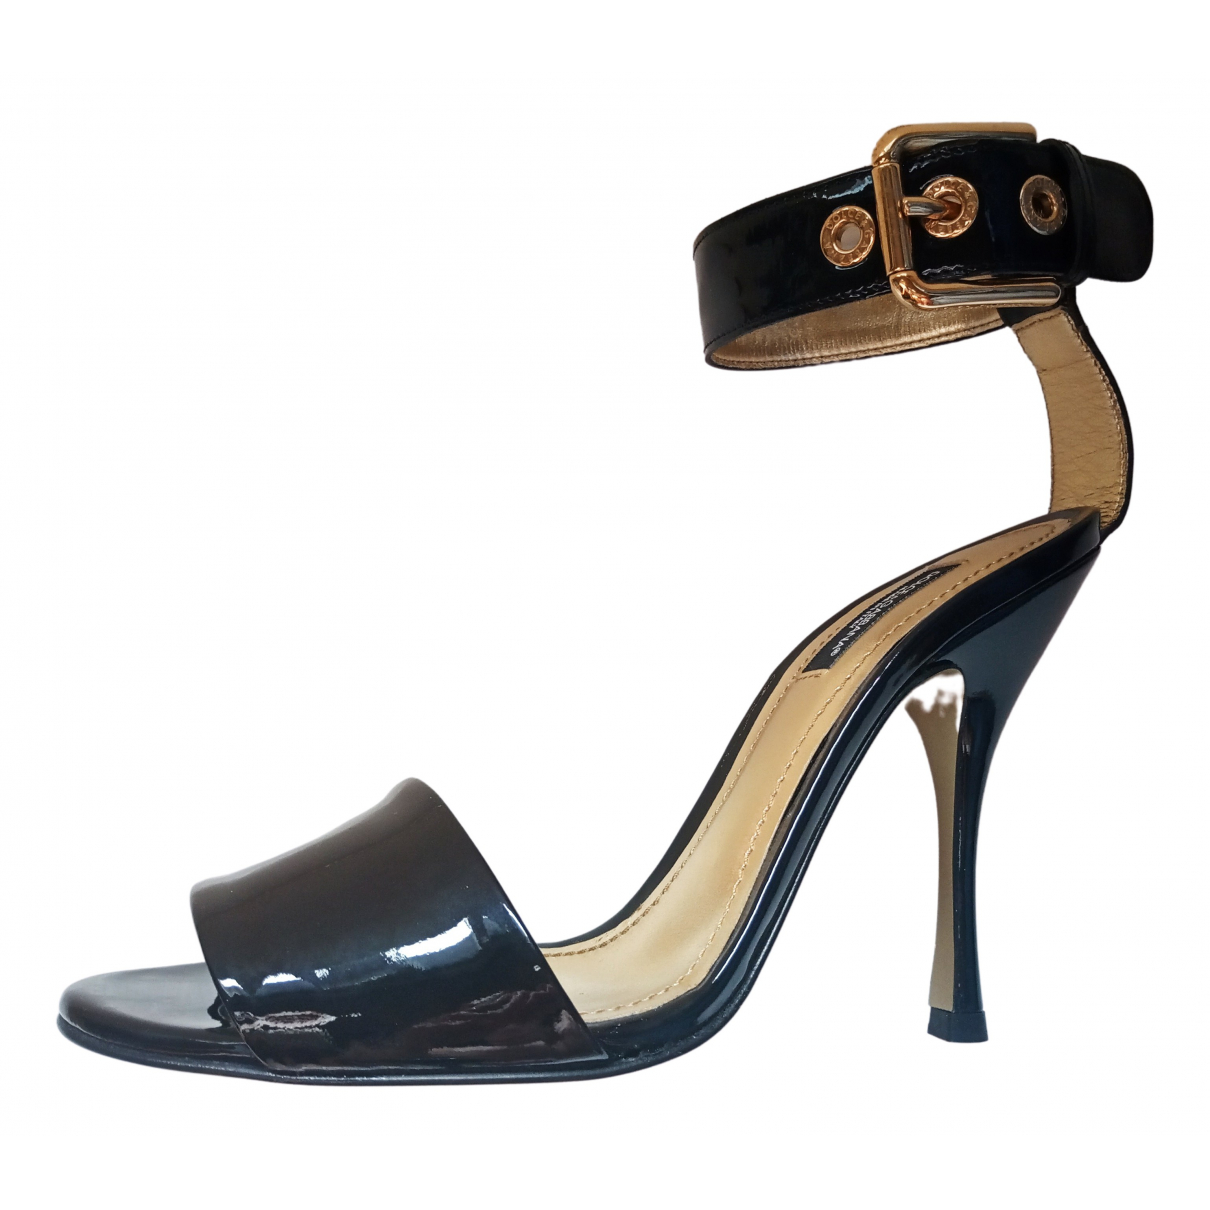 Dolce & Gabbana \N Black Patent leather Sandals for Women 37.5 IT